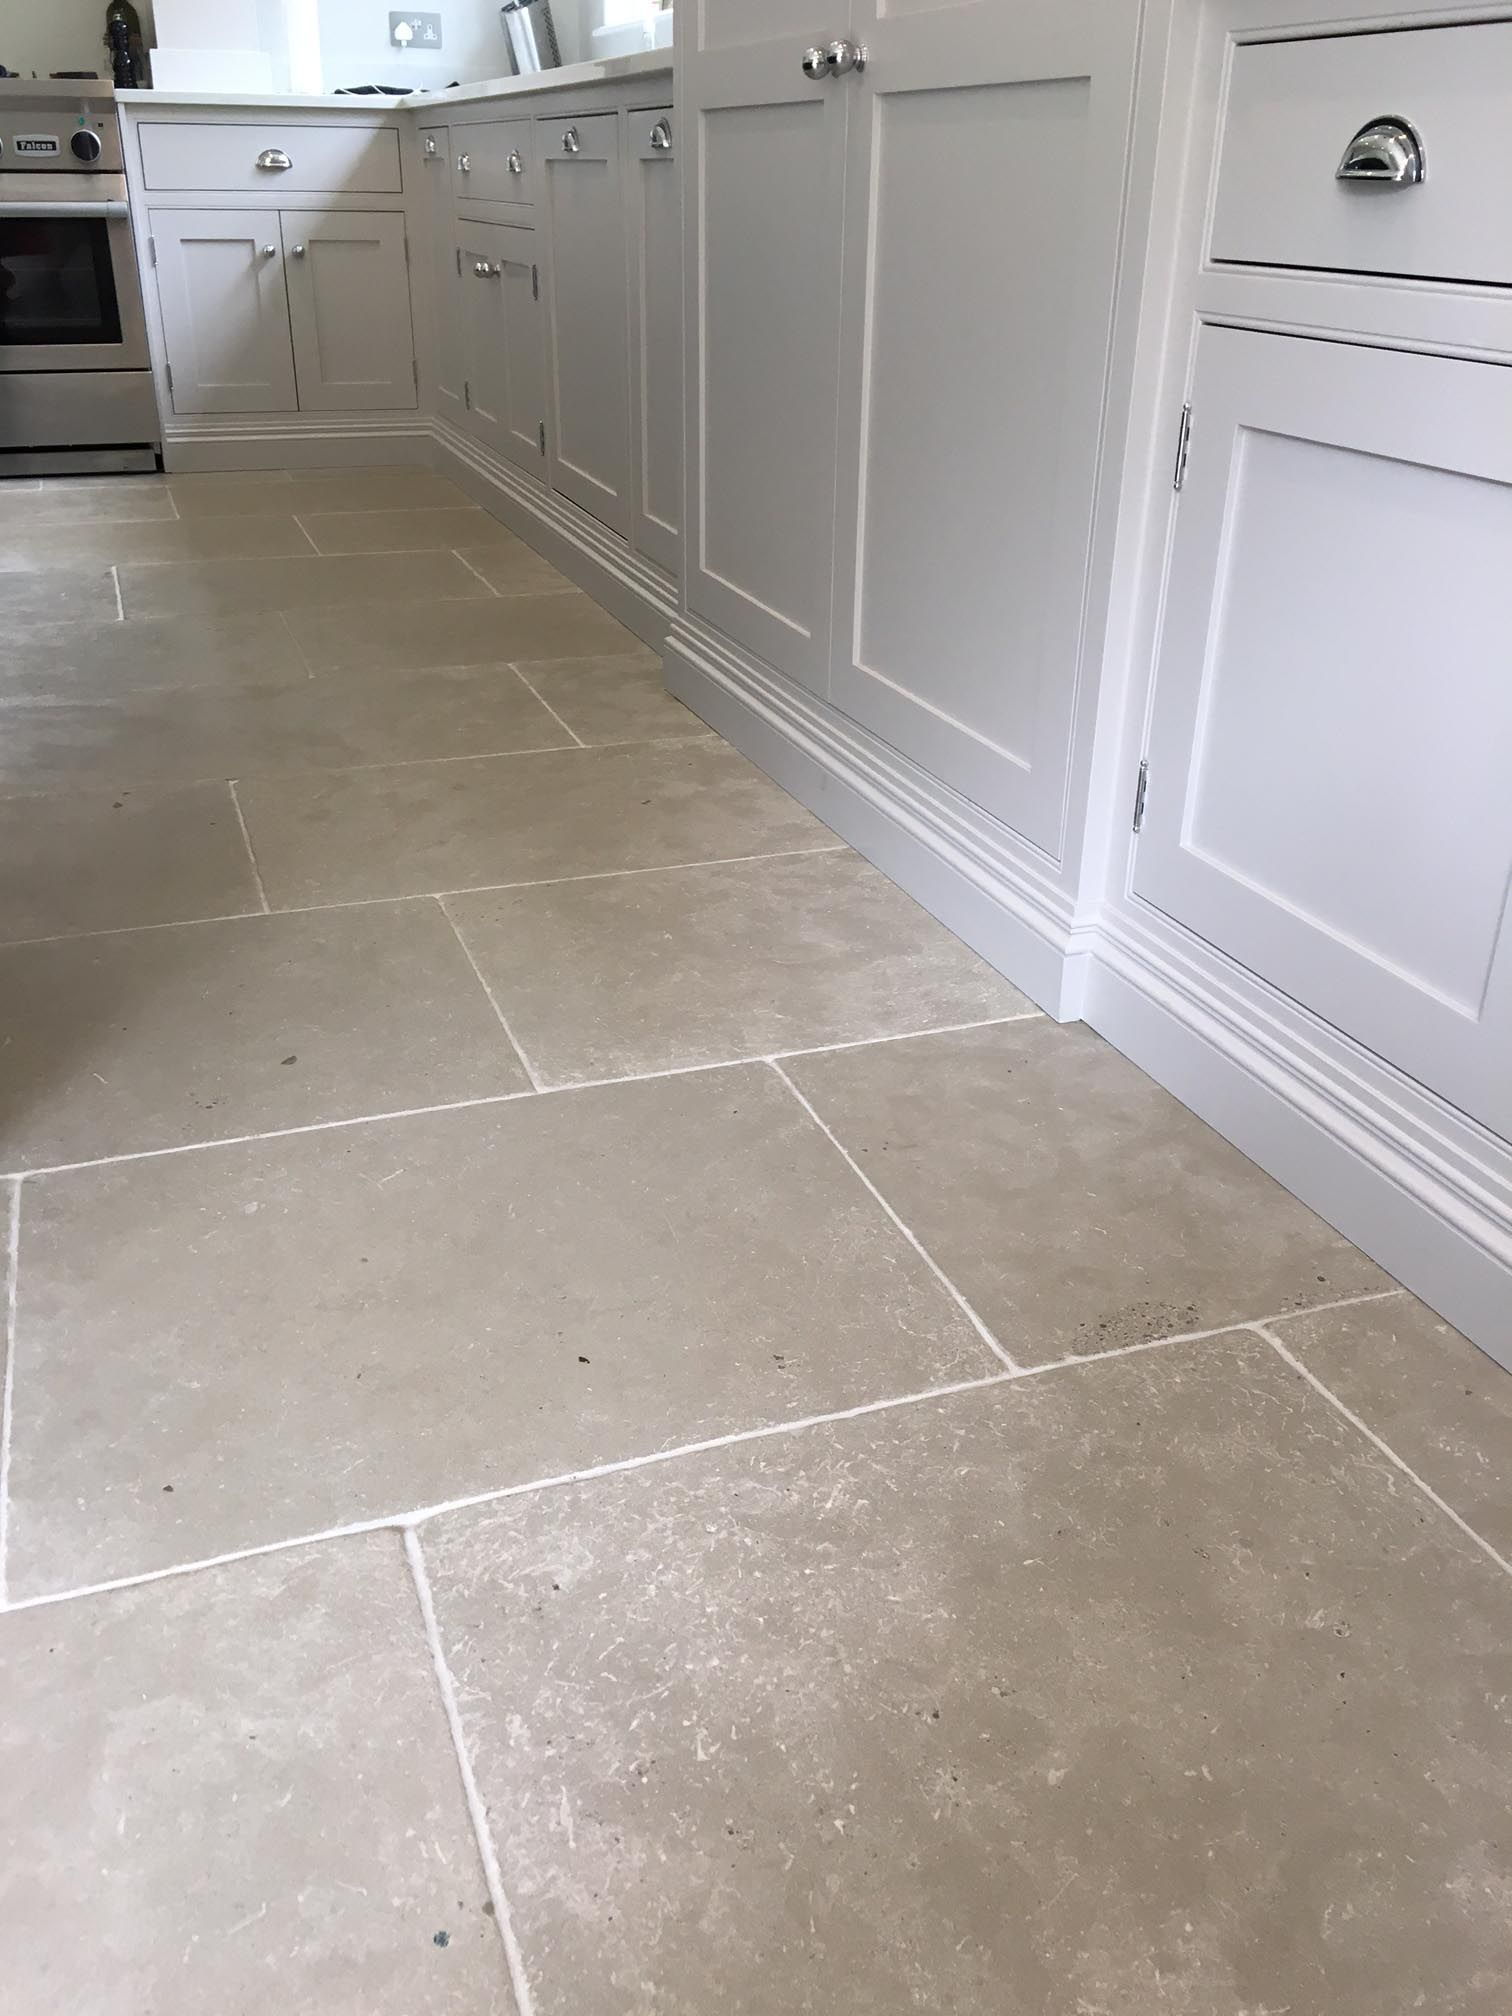 Paris Grey Limestone Tiles For A Durable Kitchen Floor Http